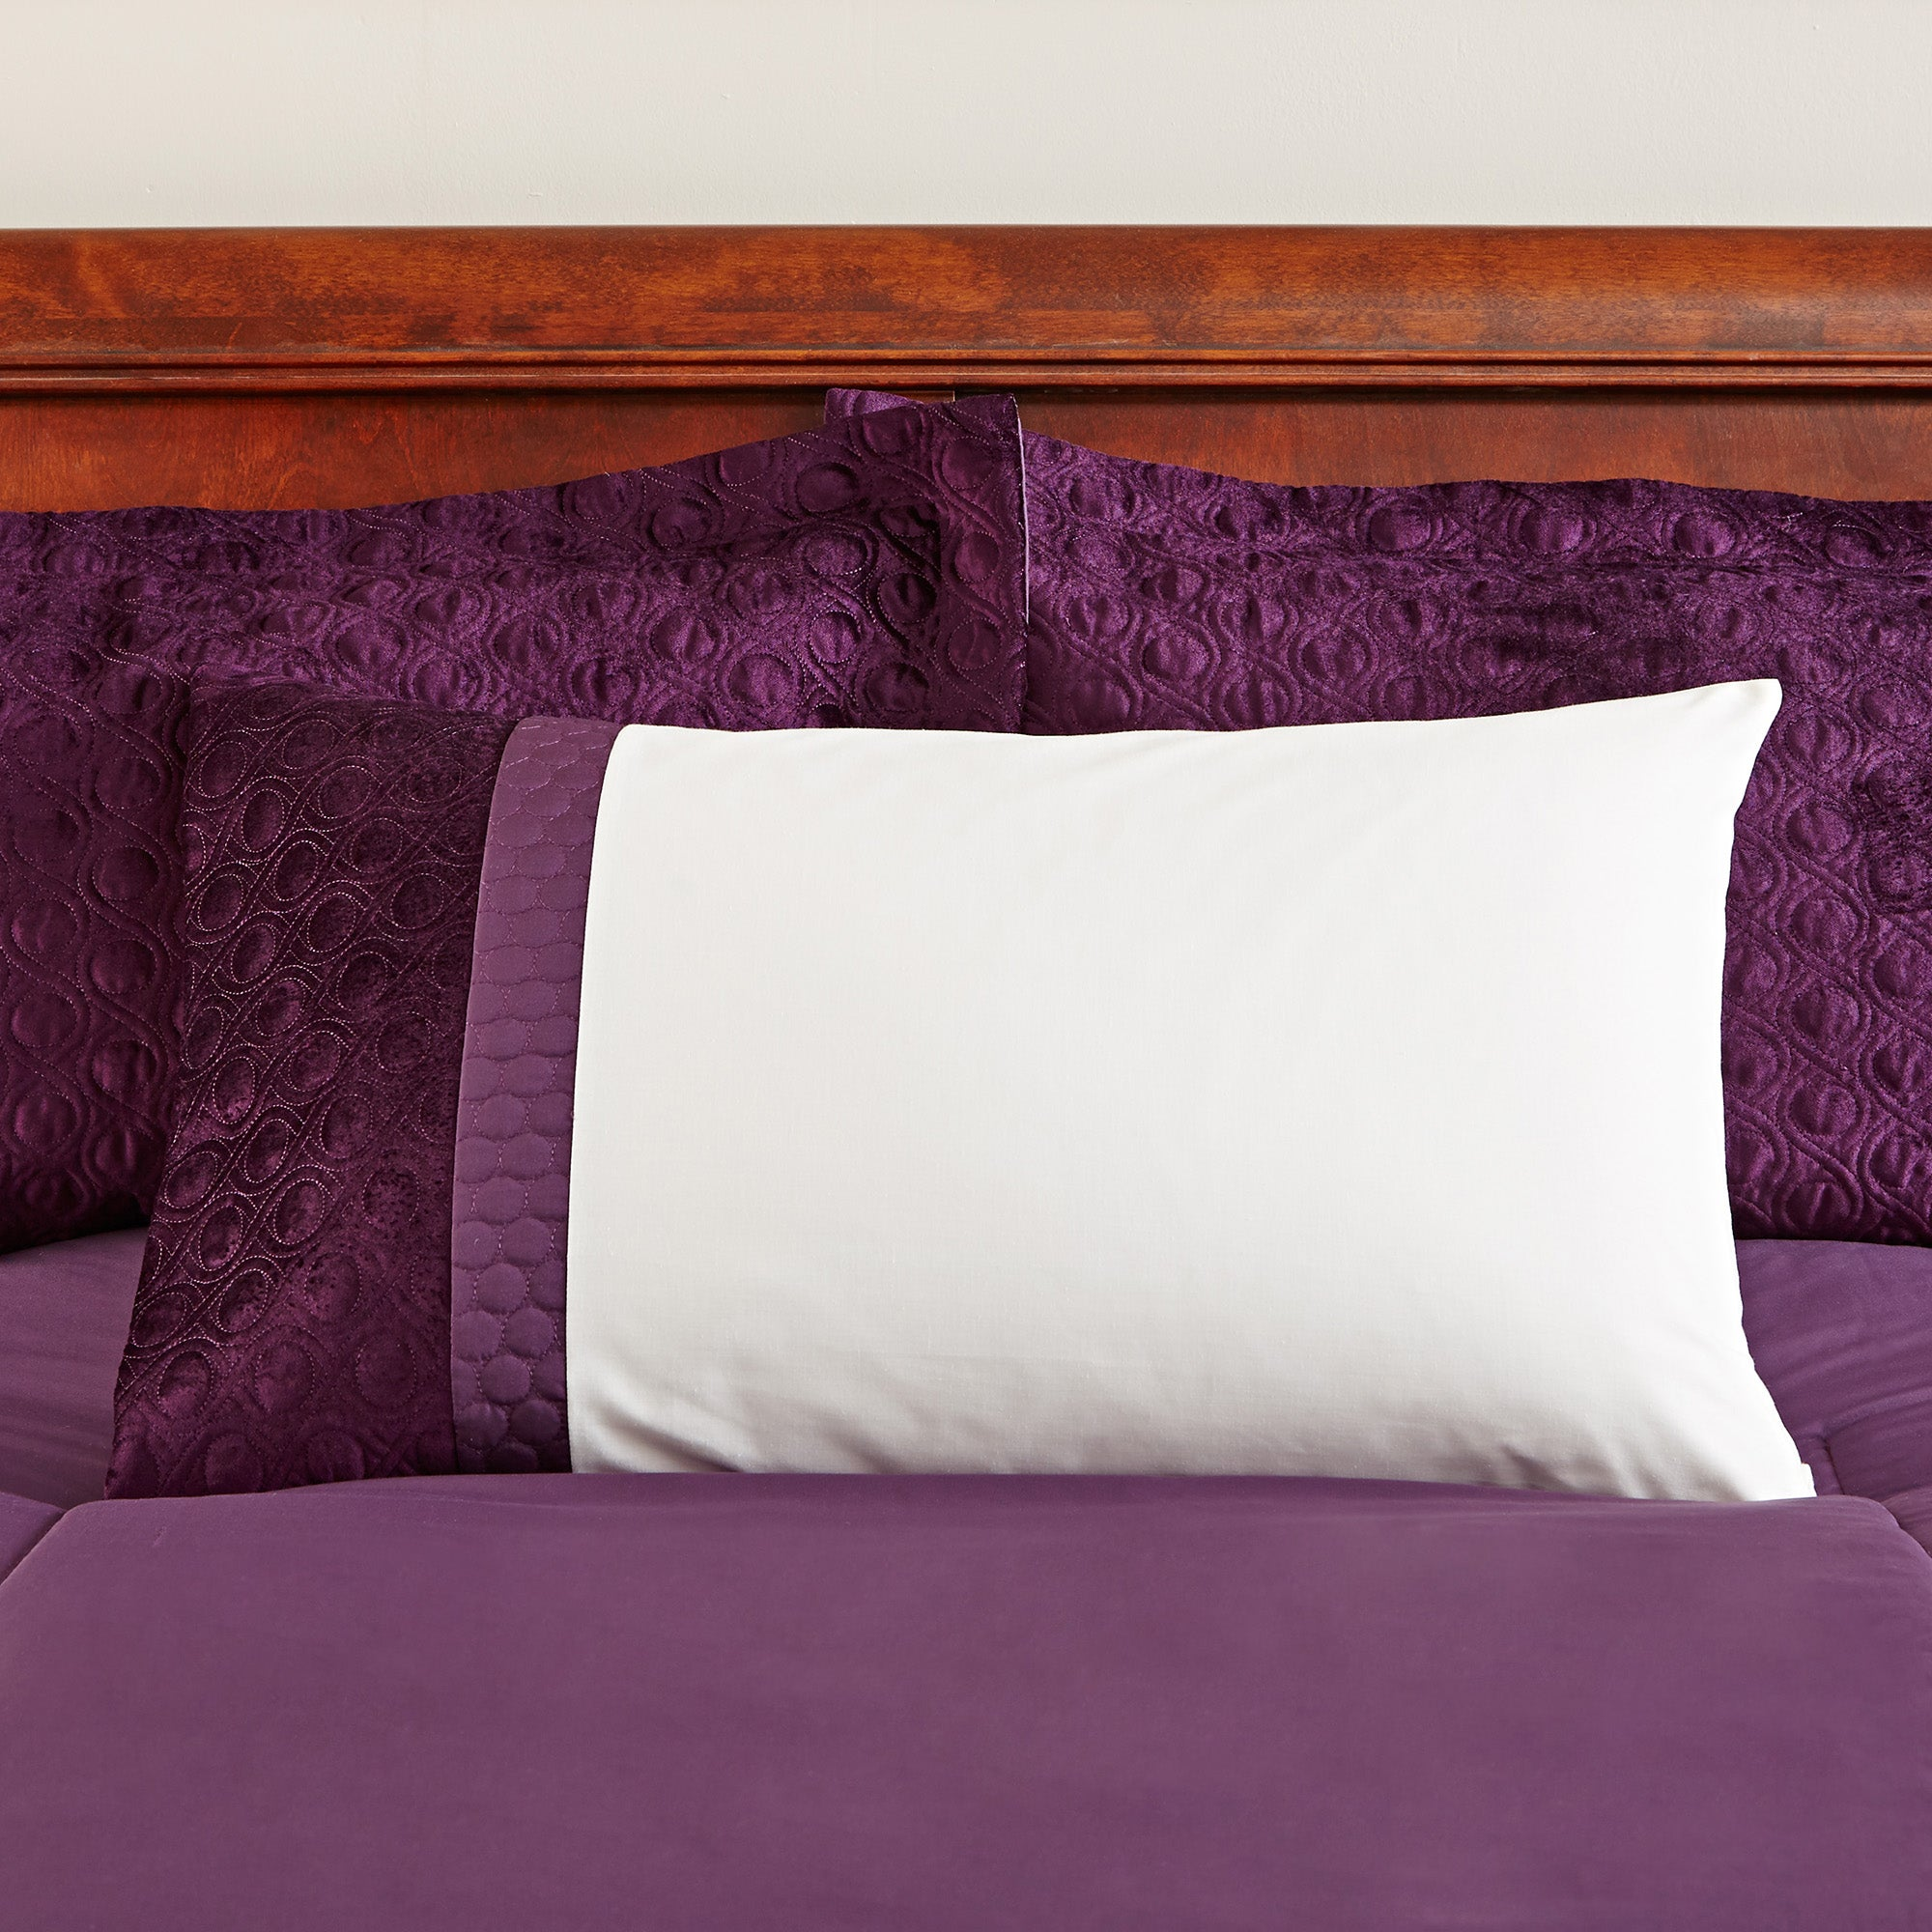 Image of Adalene Plum Housewife Pillowcase Plum (Purple)